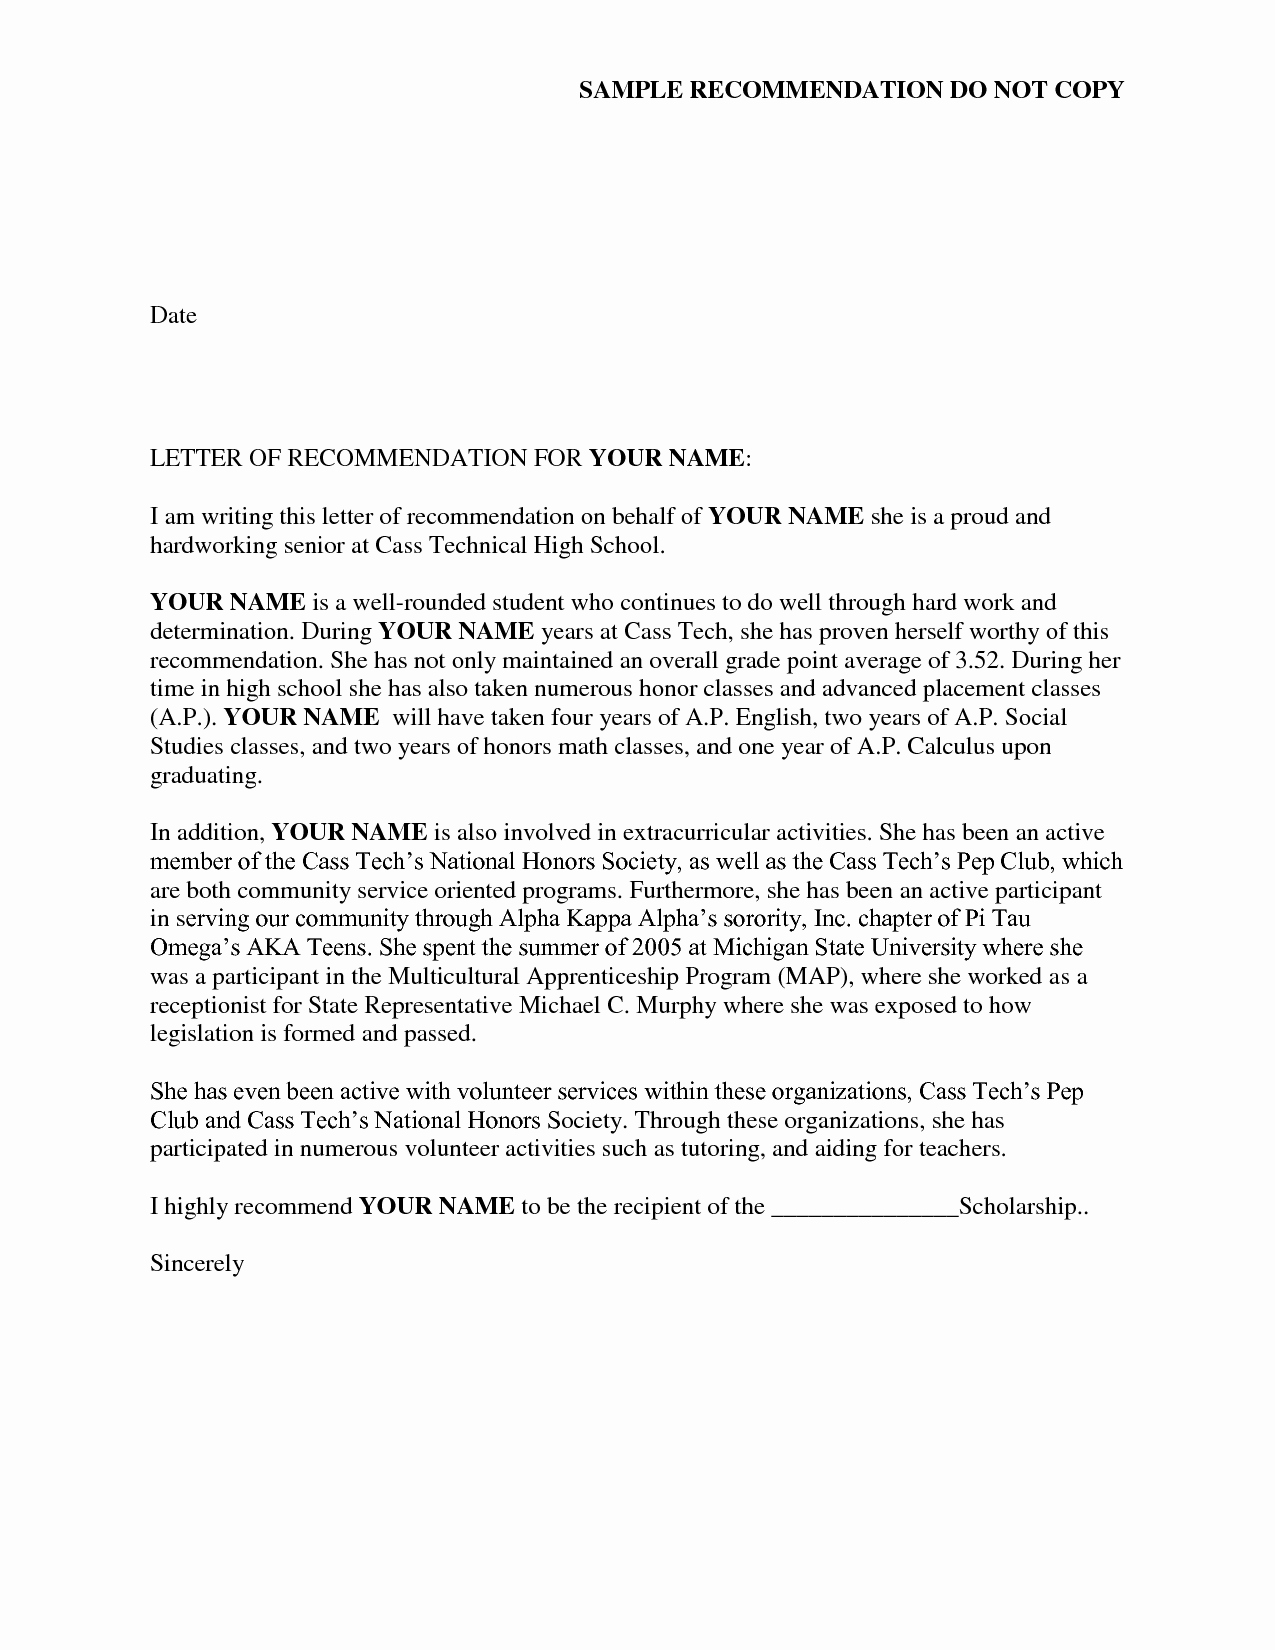 Letter Of Recommendation Templates Unique Reference Letter Of Re Mendation Sample